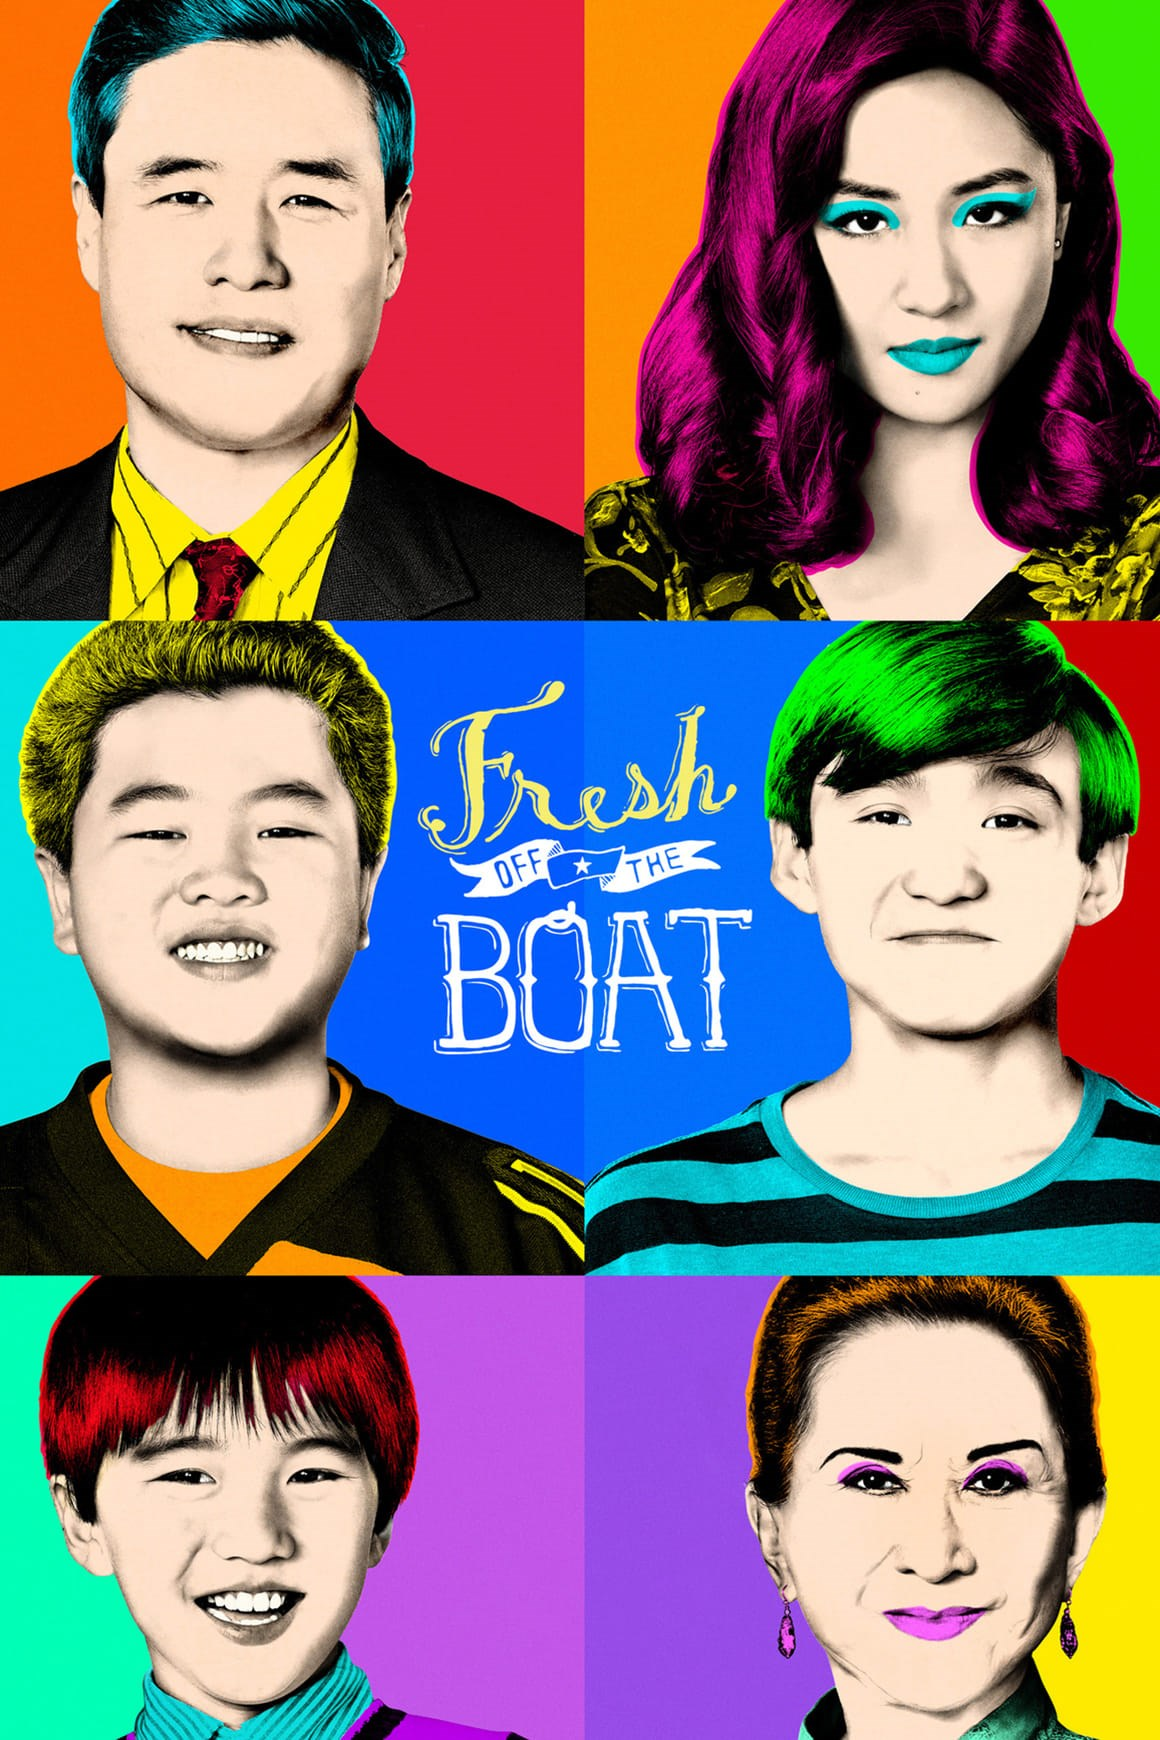 Fresh Off the Boat subtitles